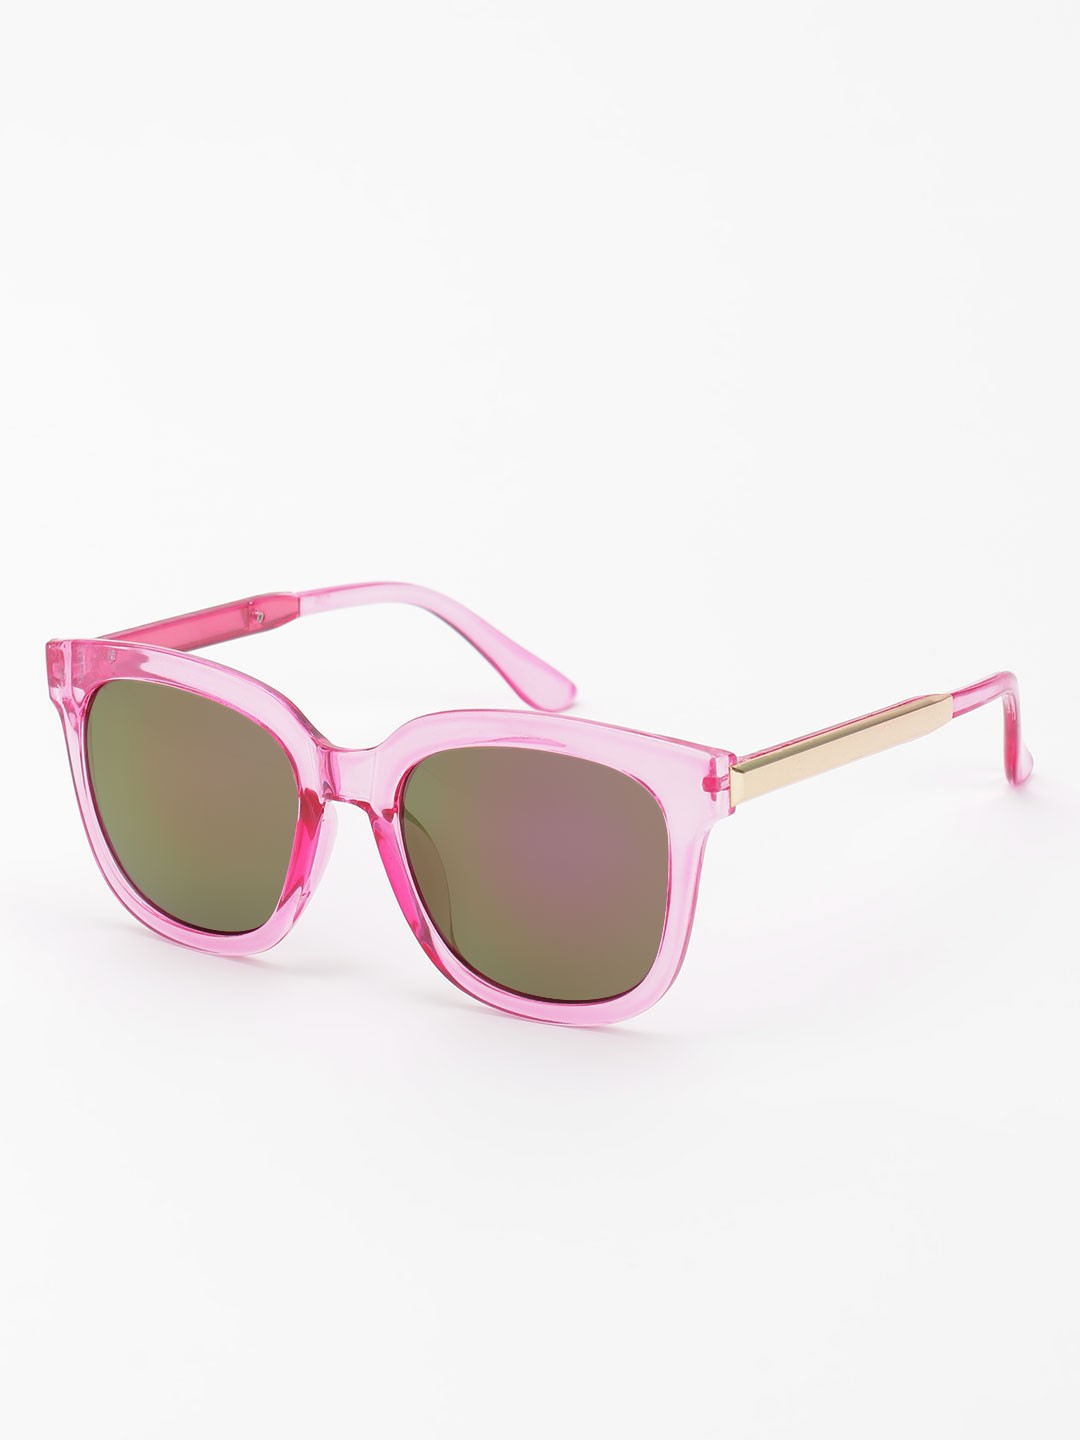 KOOVS Pink Coloured Lens Retro Sunglasses 1